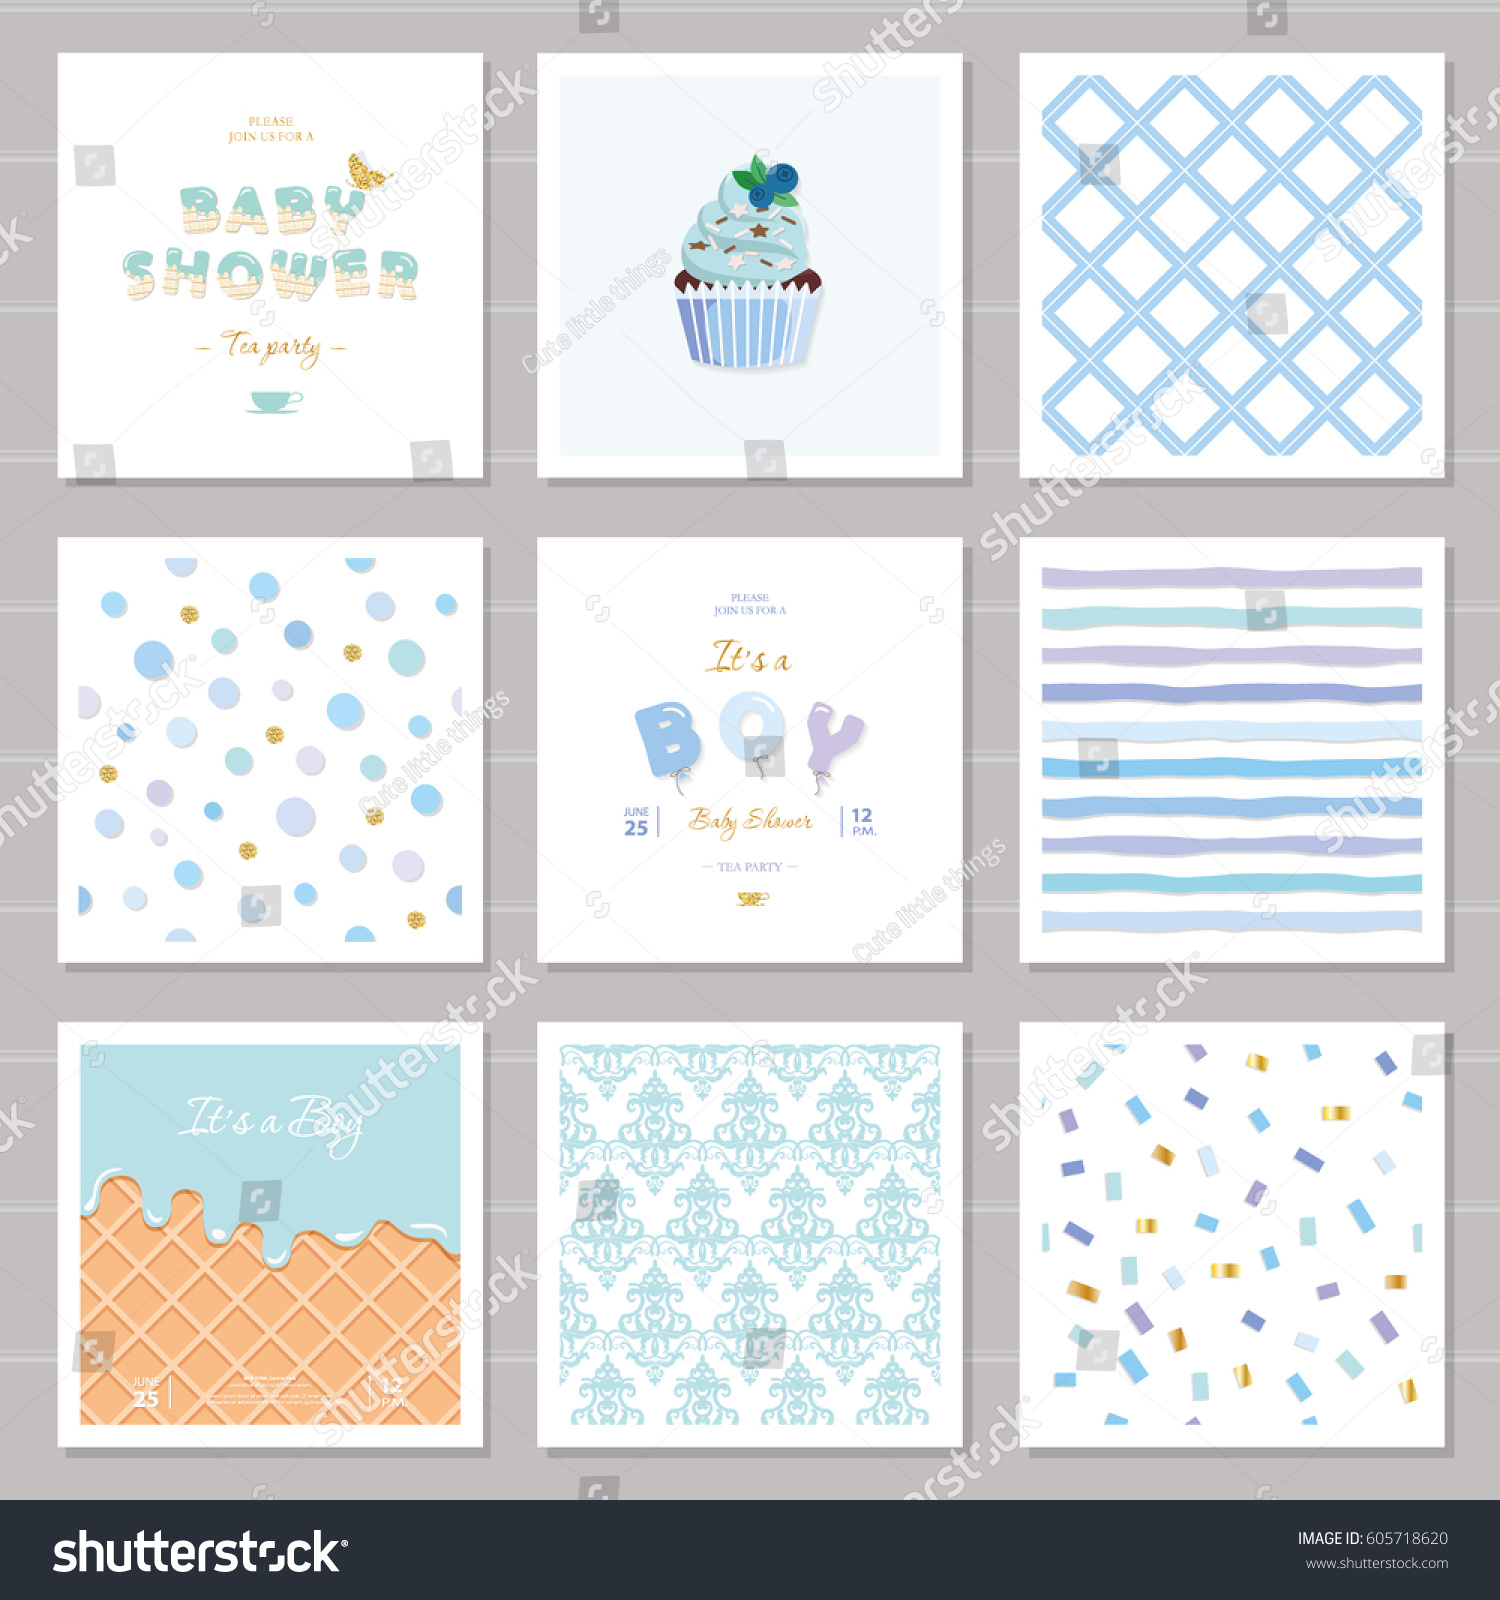 Boy Baby Shower Templates Seamless Patterns Stock Vector Royalty